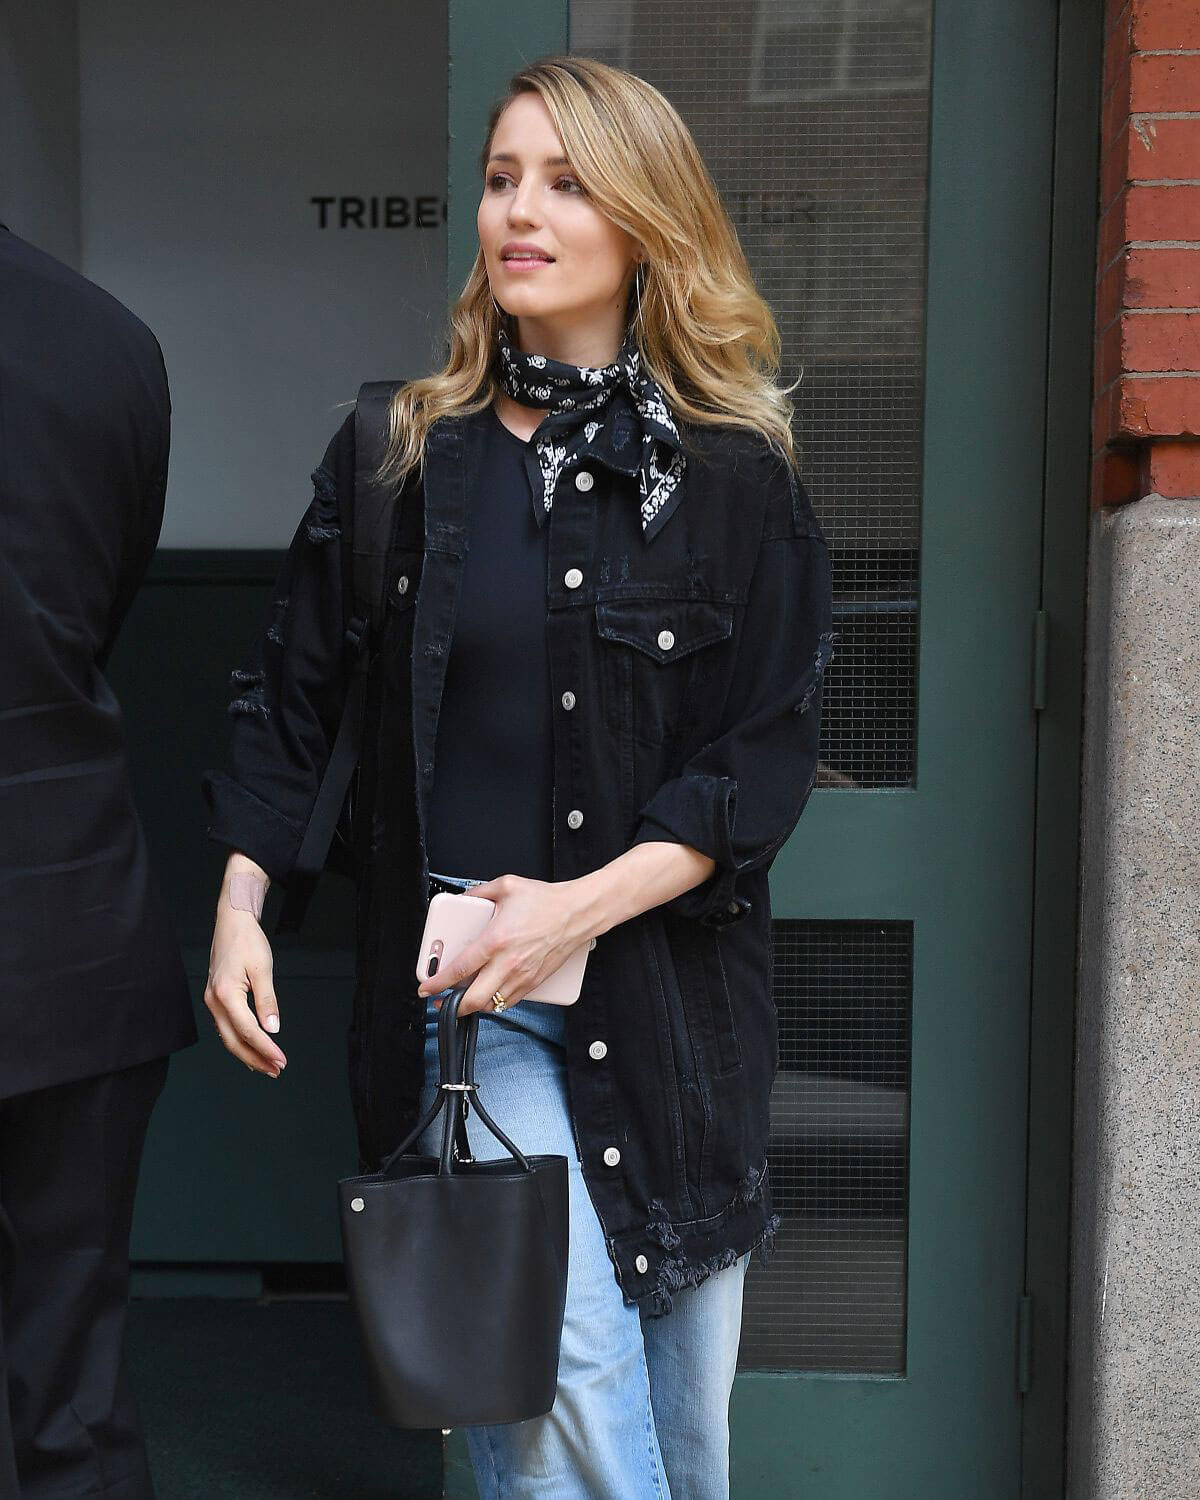 Dianna Agron Stills Leaves Her Hotel in New York